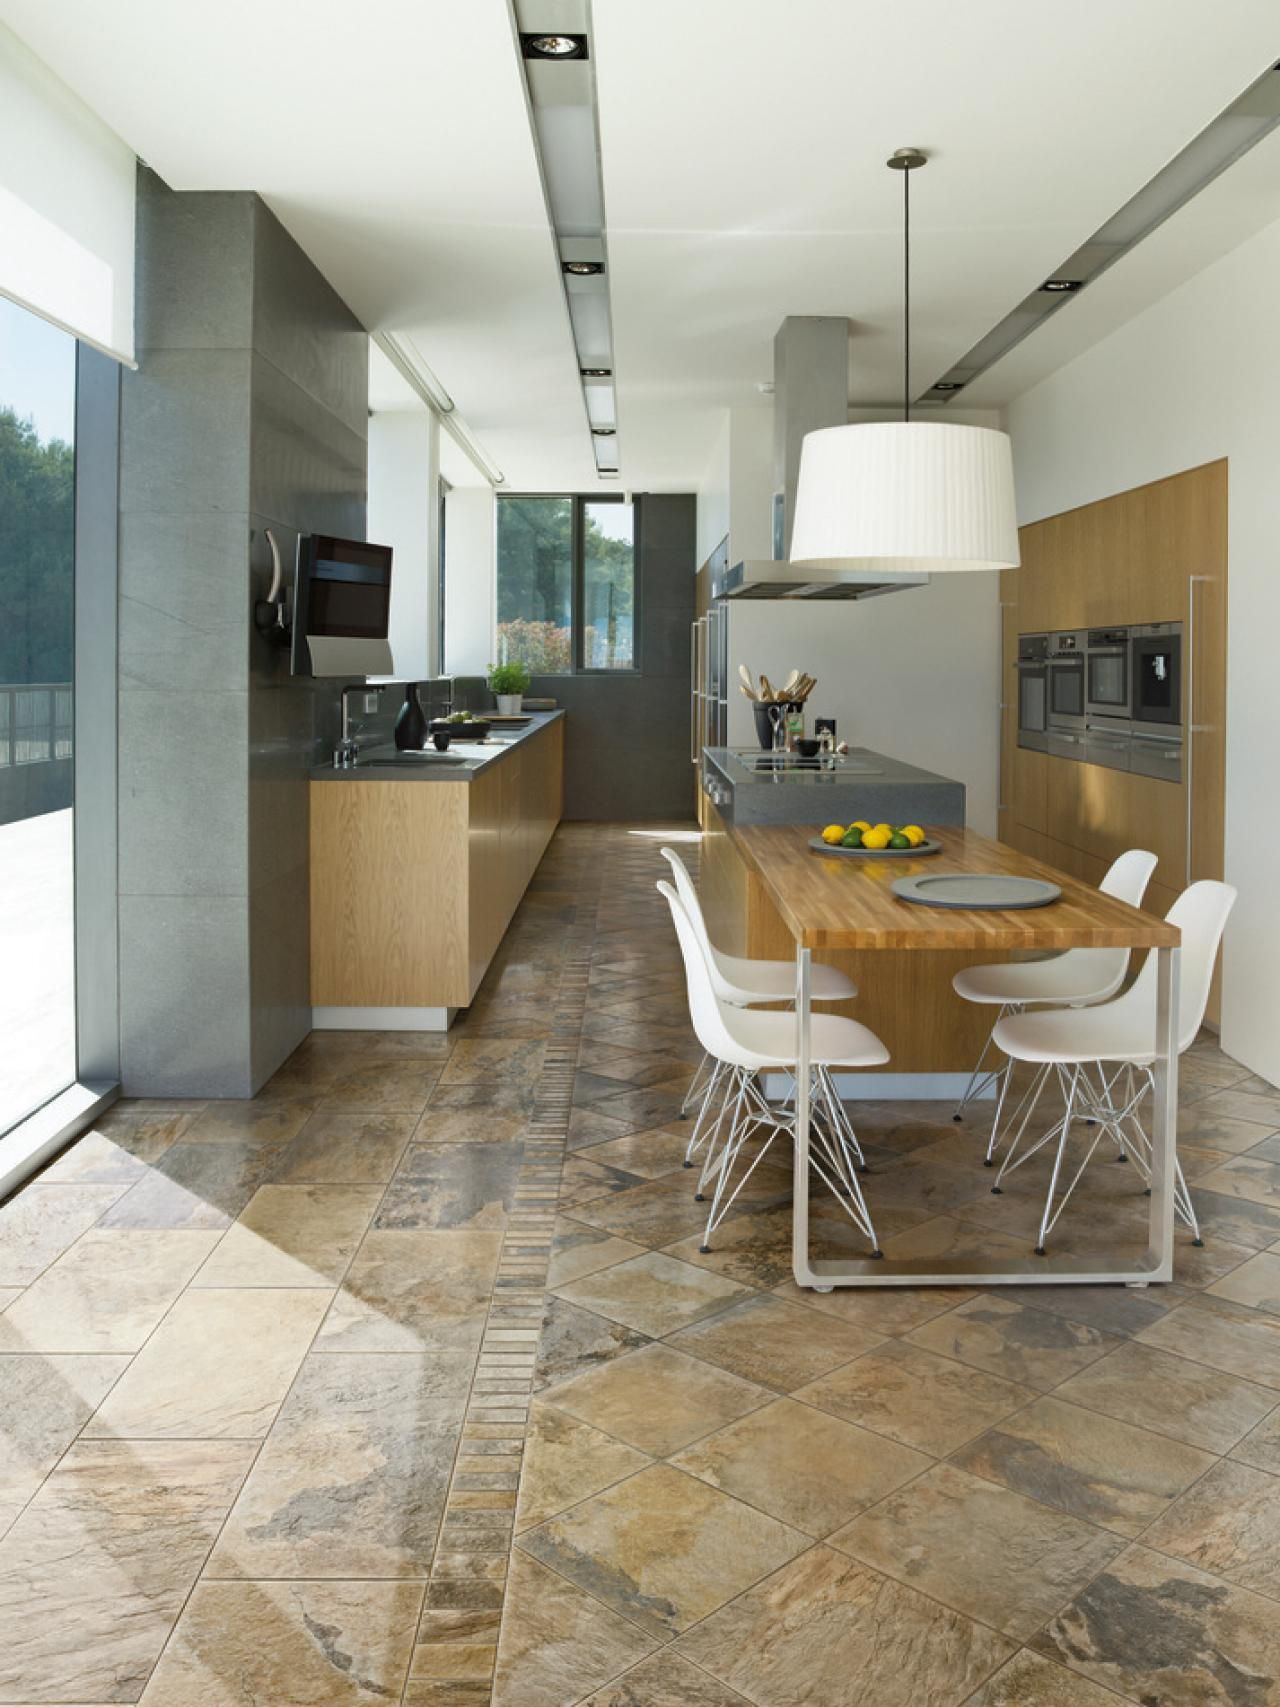 Merveilleux 18 Beautiful Examples Of Kitchen Floor Tile